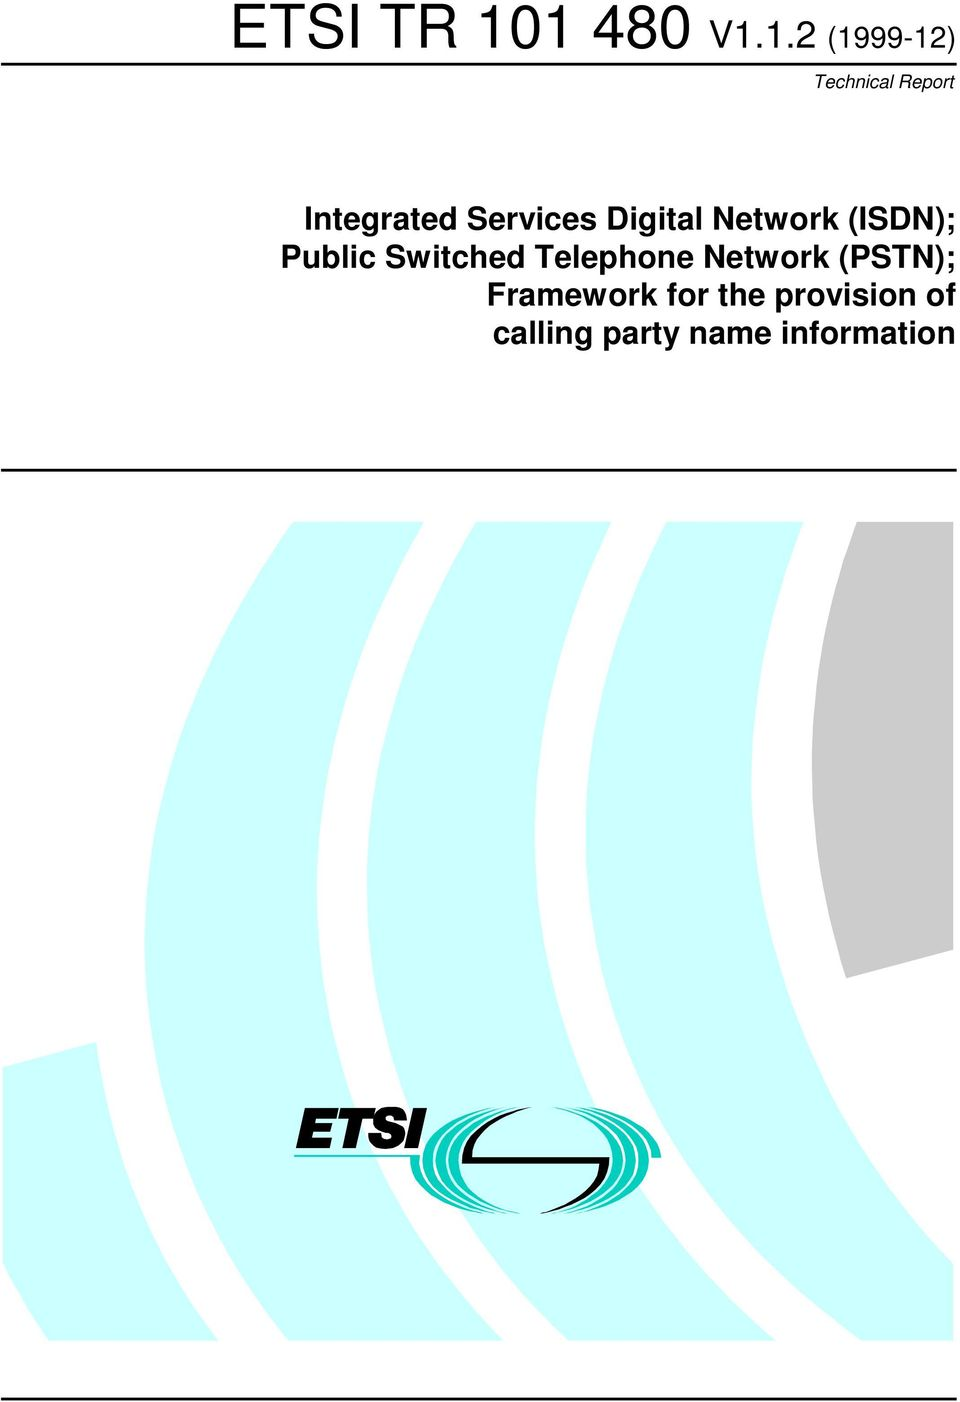 Public Switched Telephone Network (PSTN);